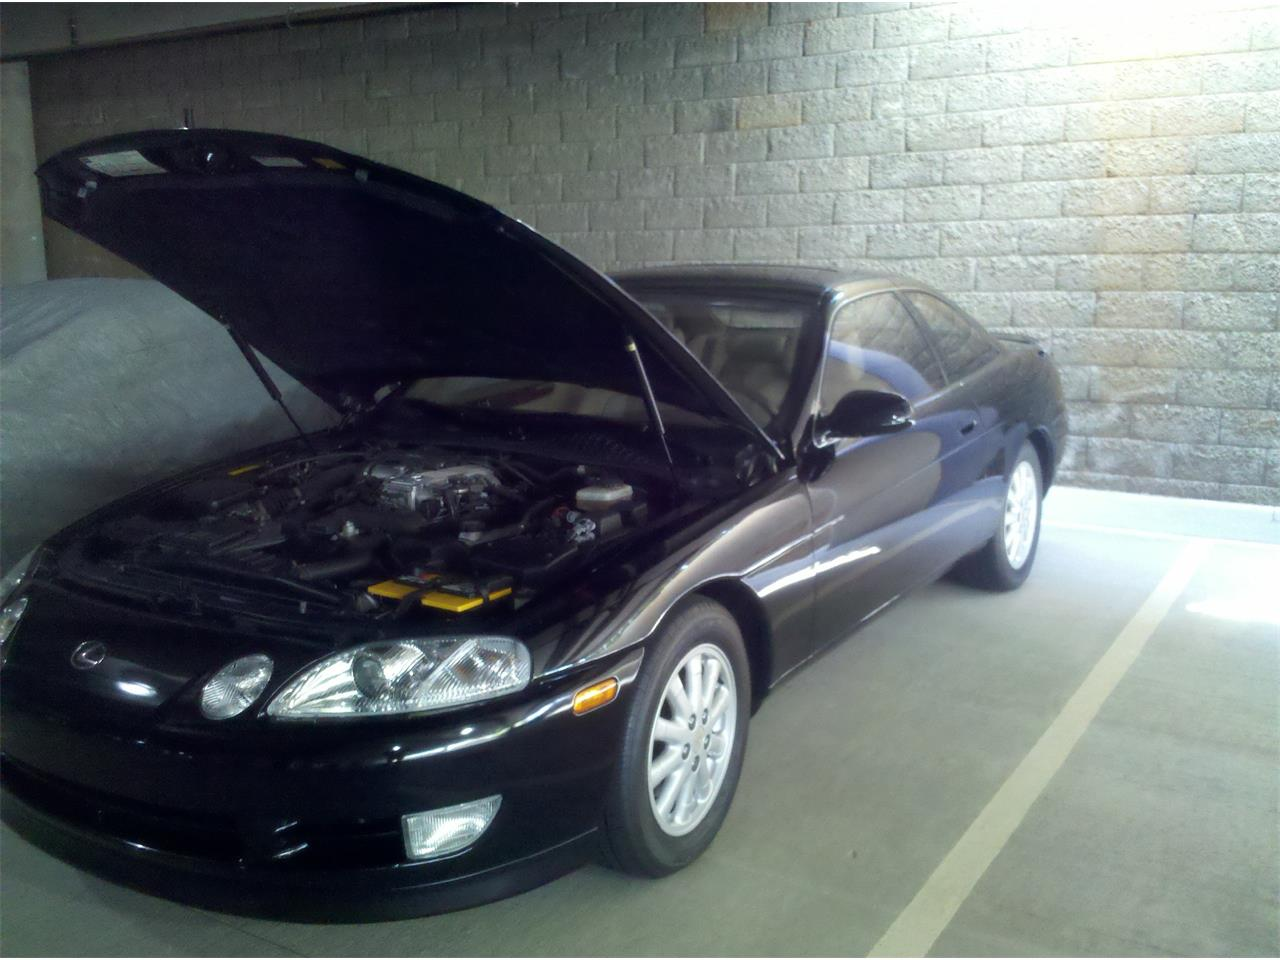 Large Picture of 1992 Lexus SC400 located in N.C. Offered by a Private Seller - LQLE